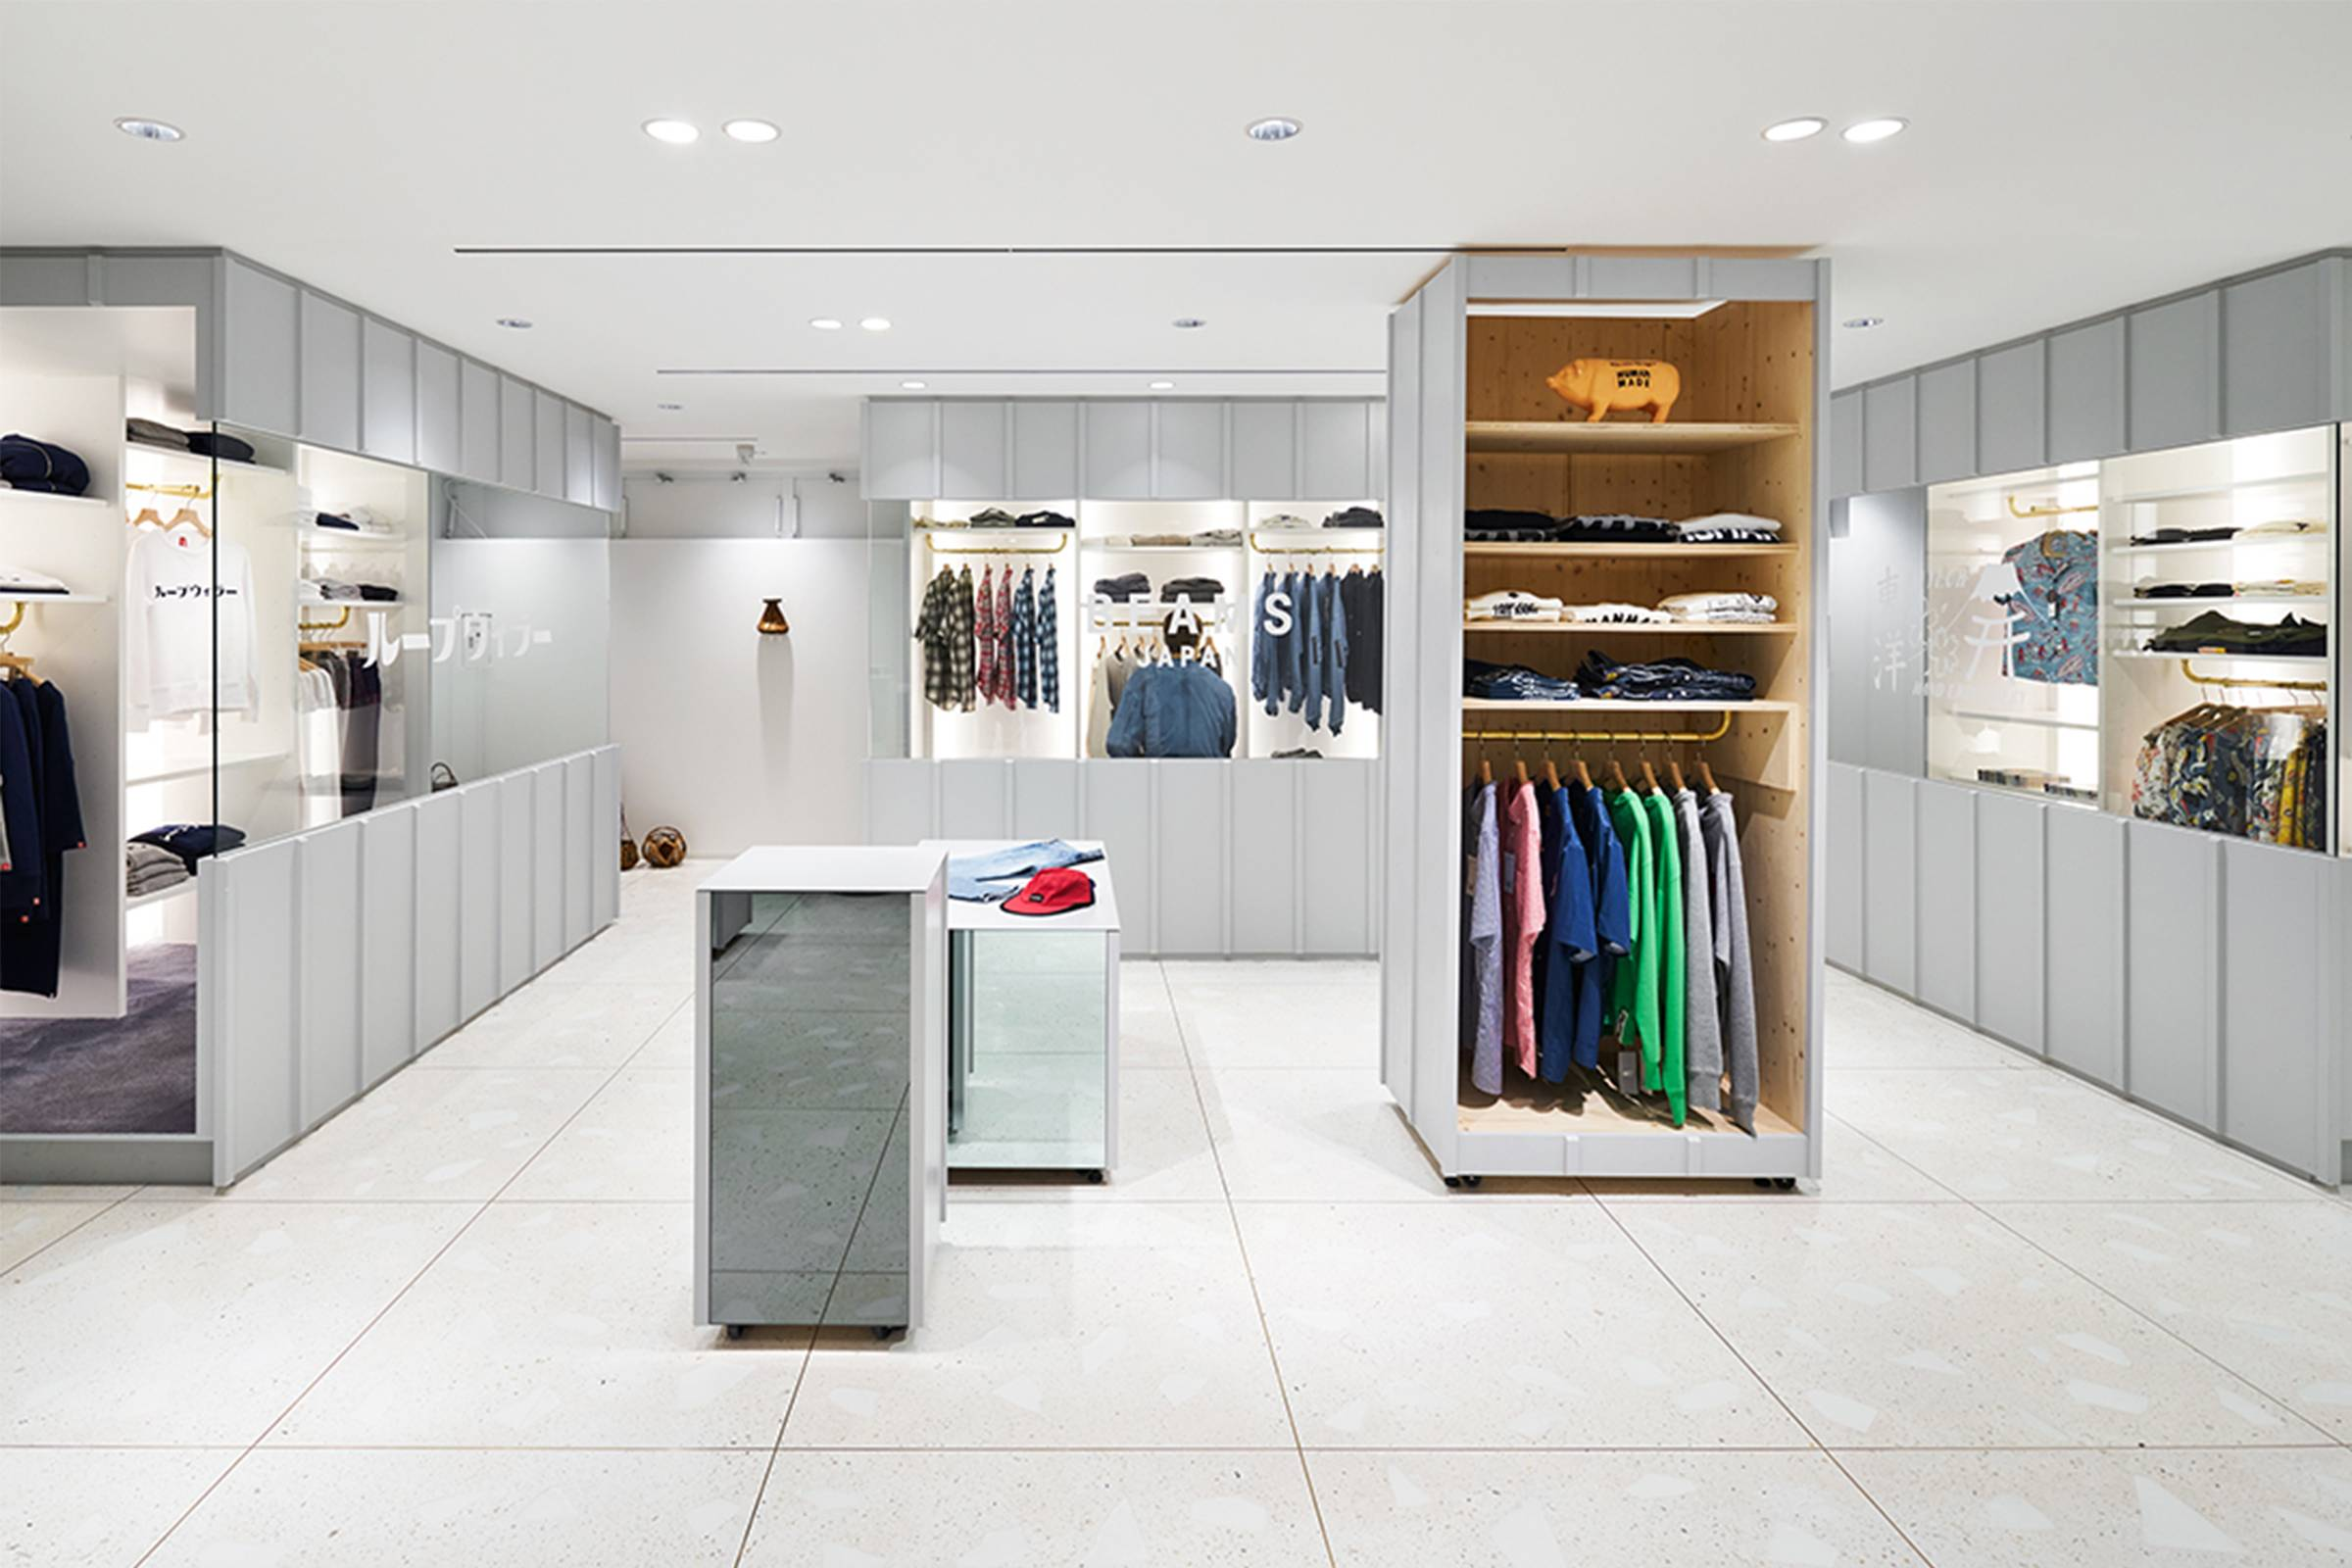 Influential japanese lifestyle and apparel brand beams has - Brands Like Sasquatchfabrix Facetasm And Digawel Are Respected For Their Imaginative Collections But Shoppers In The West Rarely Get To See Them In Store